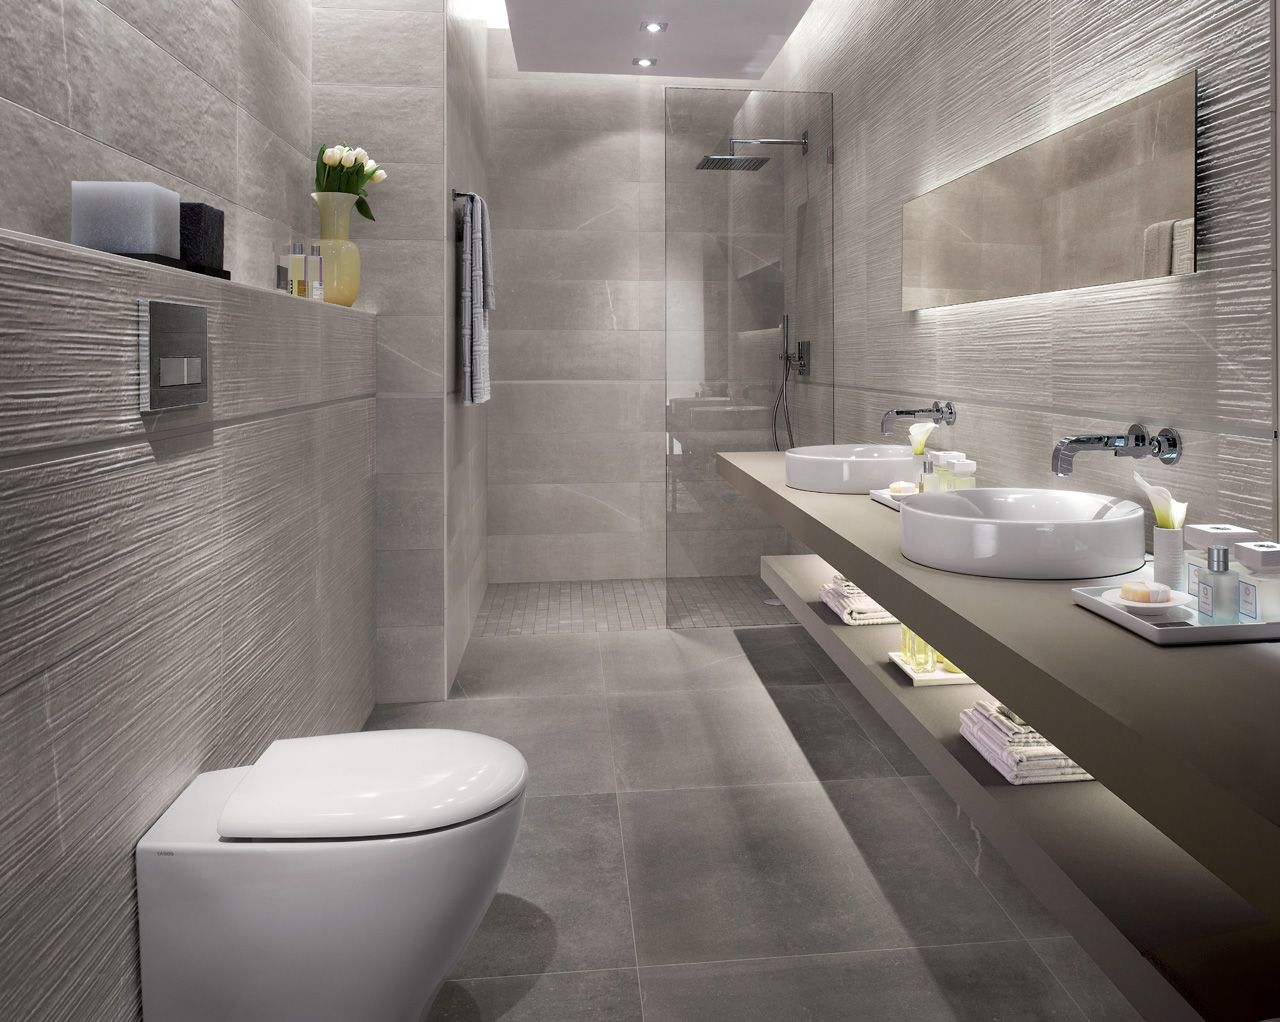 Maku fap ceramiche studio pinterest bathroom tiles e flooring